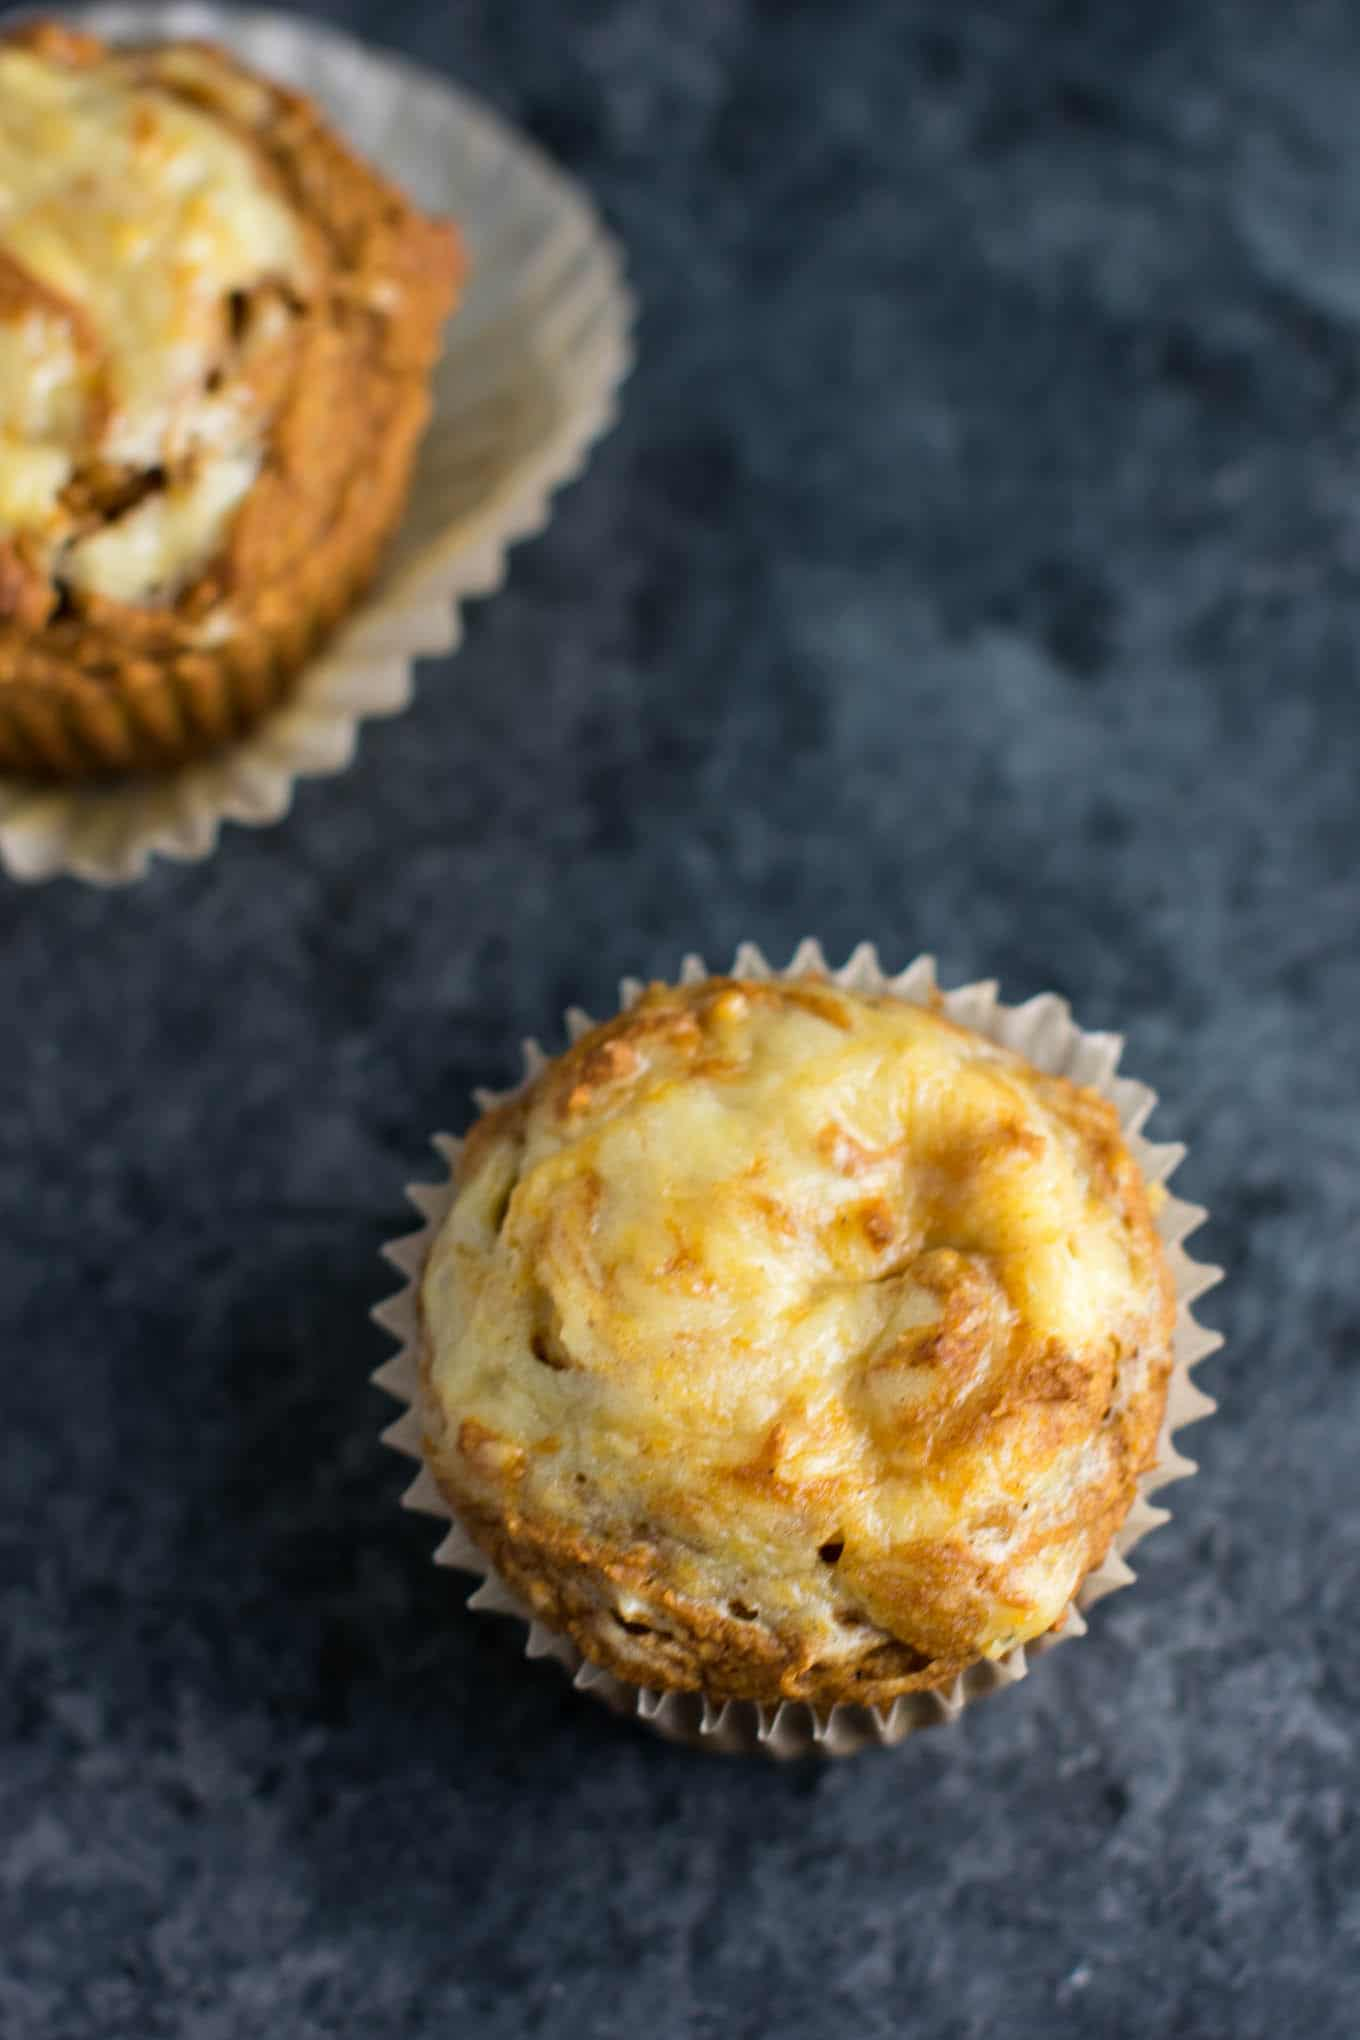 Healthy Pumpkin Cream Cheese Swirl Muffins made with whole wheat pastry flour and without butter or oil. You would never guess that these are healthy! #pumpkincreamcheeseswirl #pumpkinmuffins #healthypumpkinrecipes